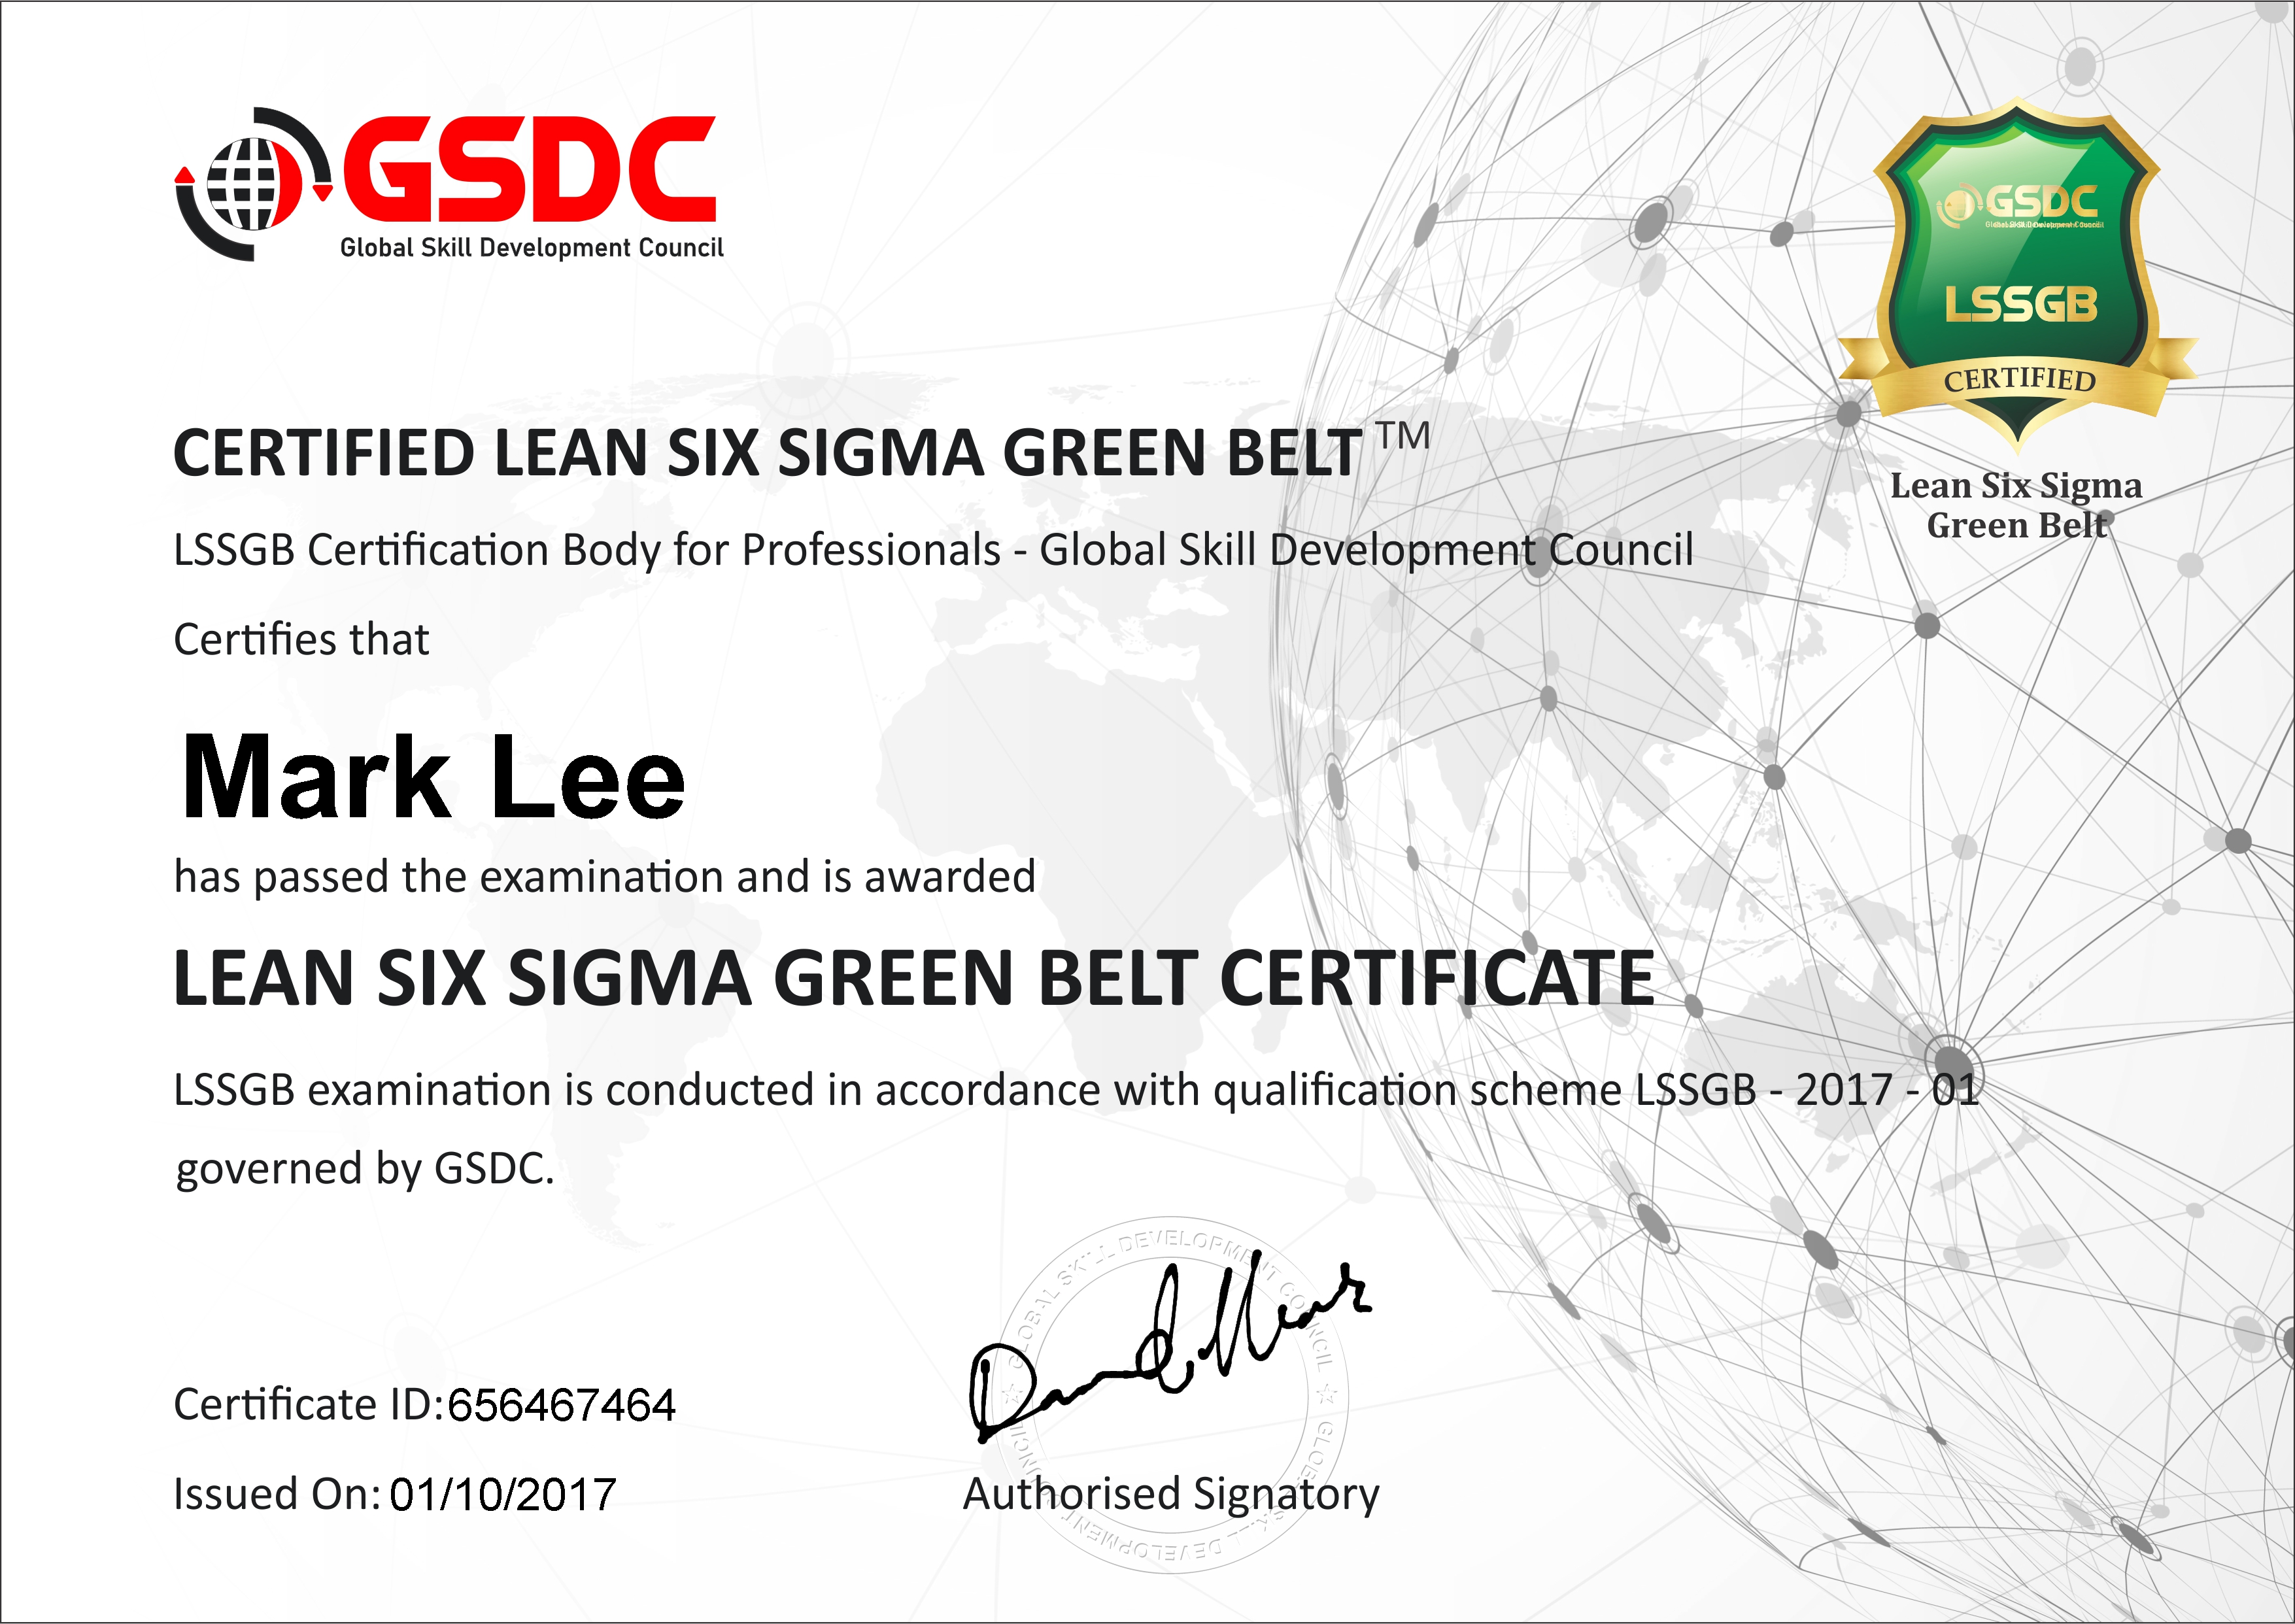 Lean Six Sigma Green Belt Training Certification Gsdcouncil